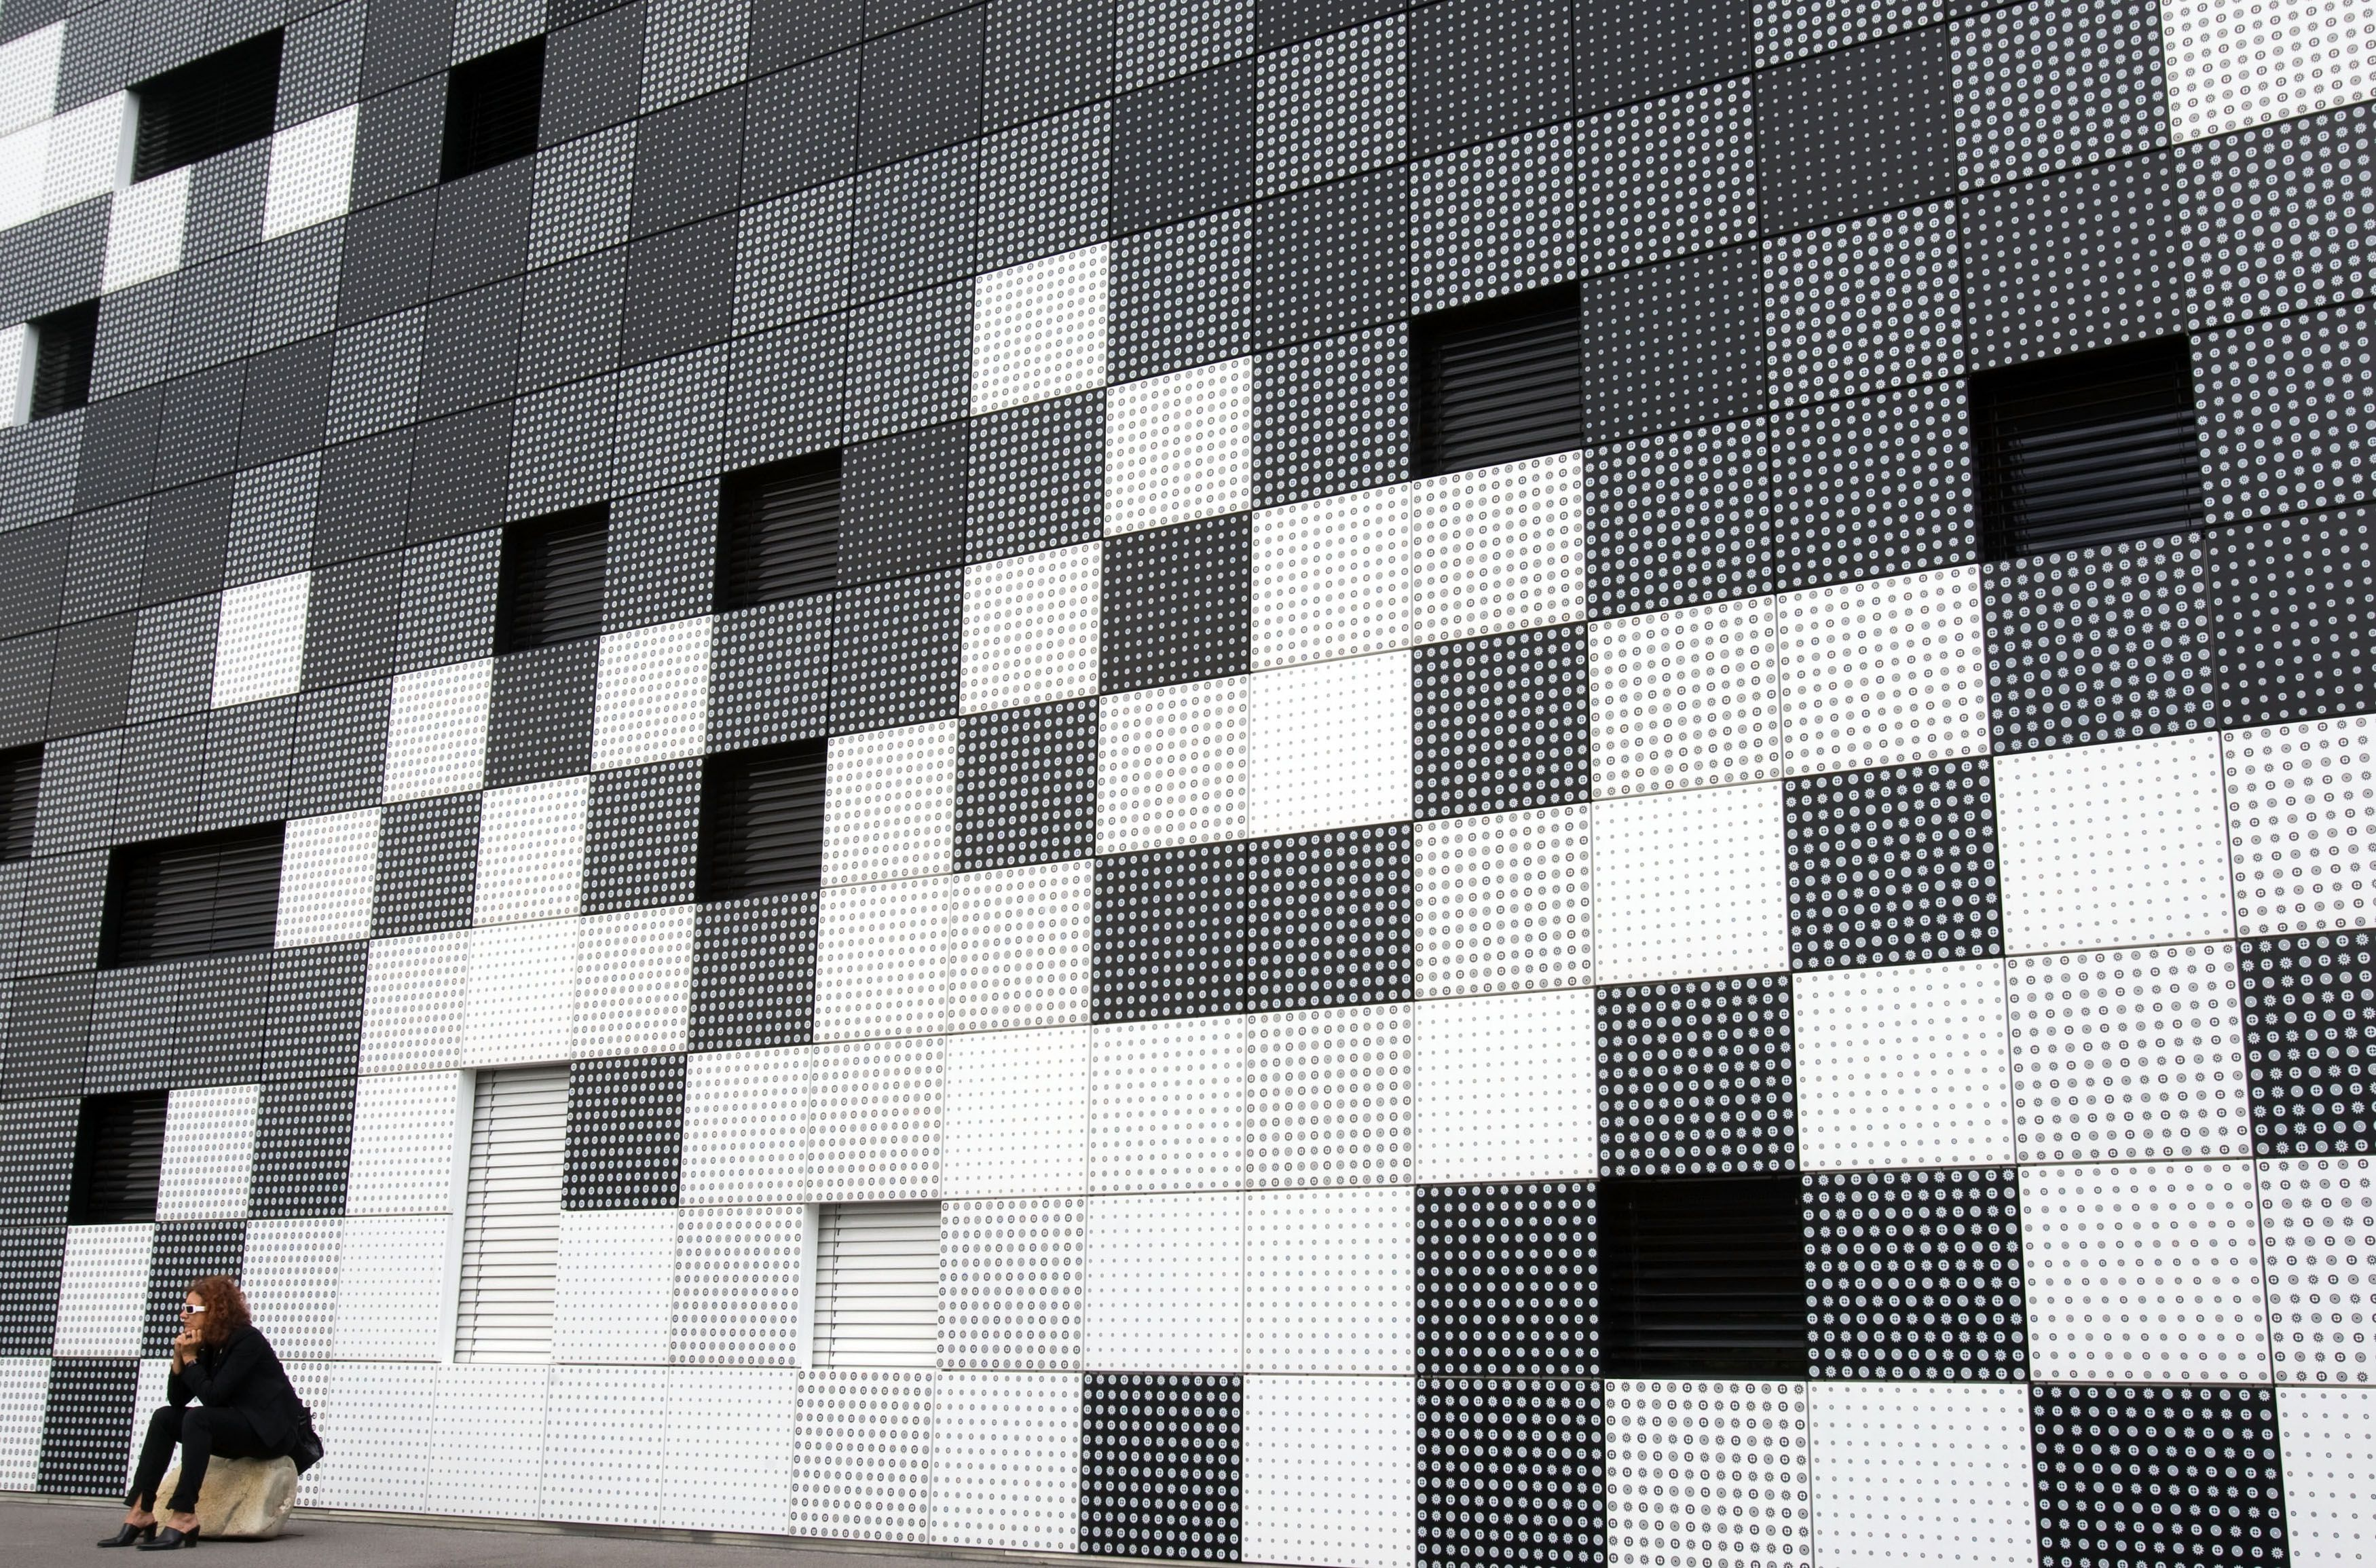 The basic geometry of the Frog Queen building designed by Splitterwerk hides window openings within the surface facade